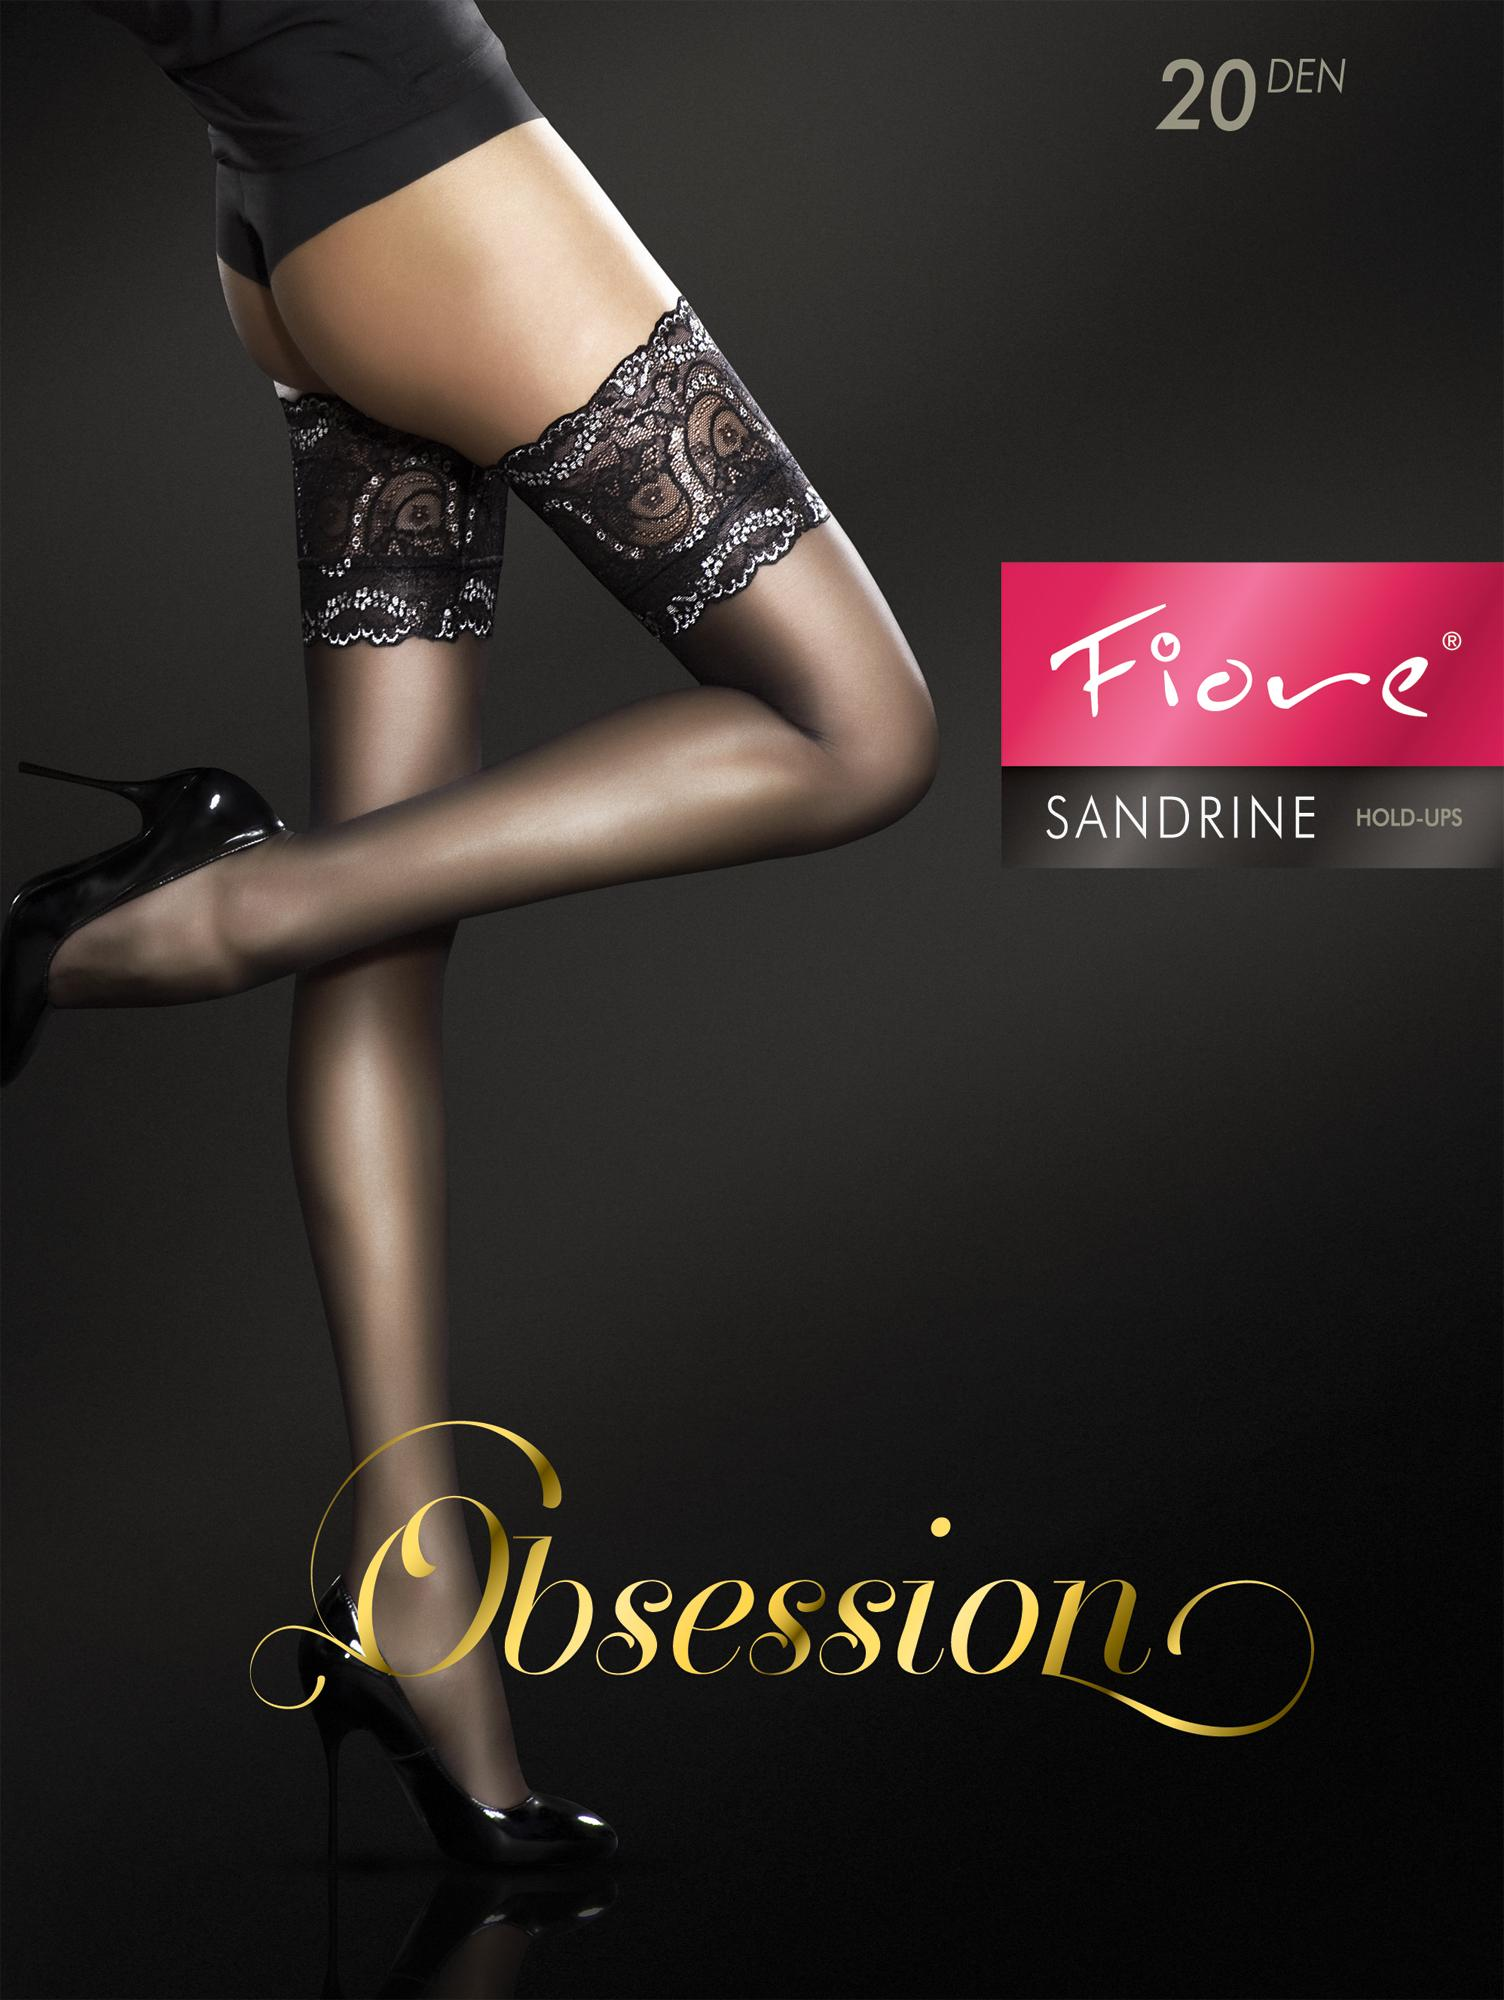 SANDRINE 20 den stay up stockings by Fiore